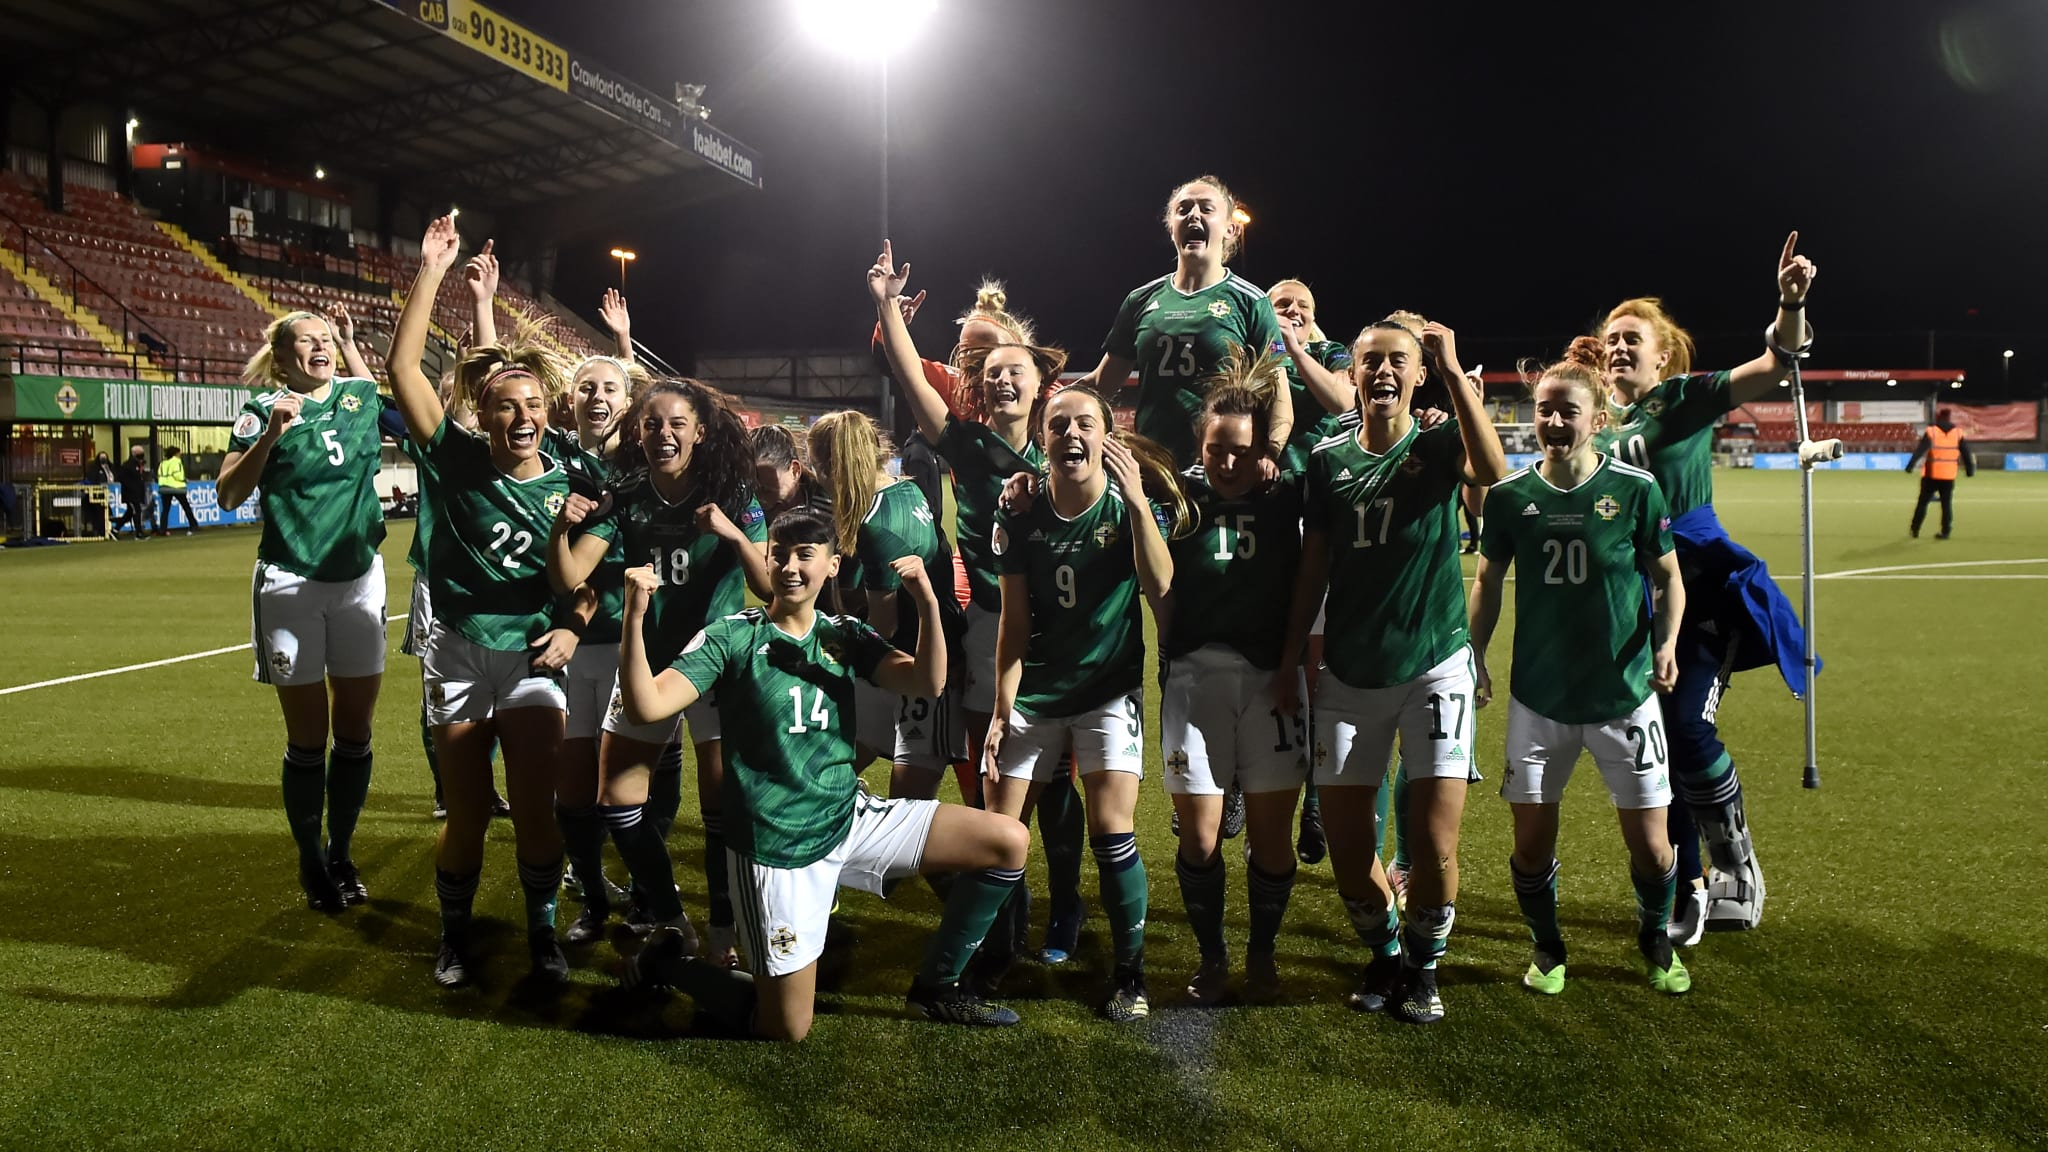 Northern Ireland players celebrate victory in the UEFA Women's Euro 2022 Play-off match between Northern Ireland and Ukraine at Seaview on April 13, 2021 in Belfast, Northern Ireland.